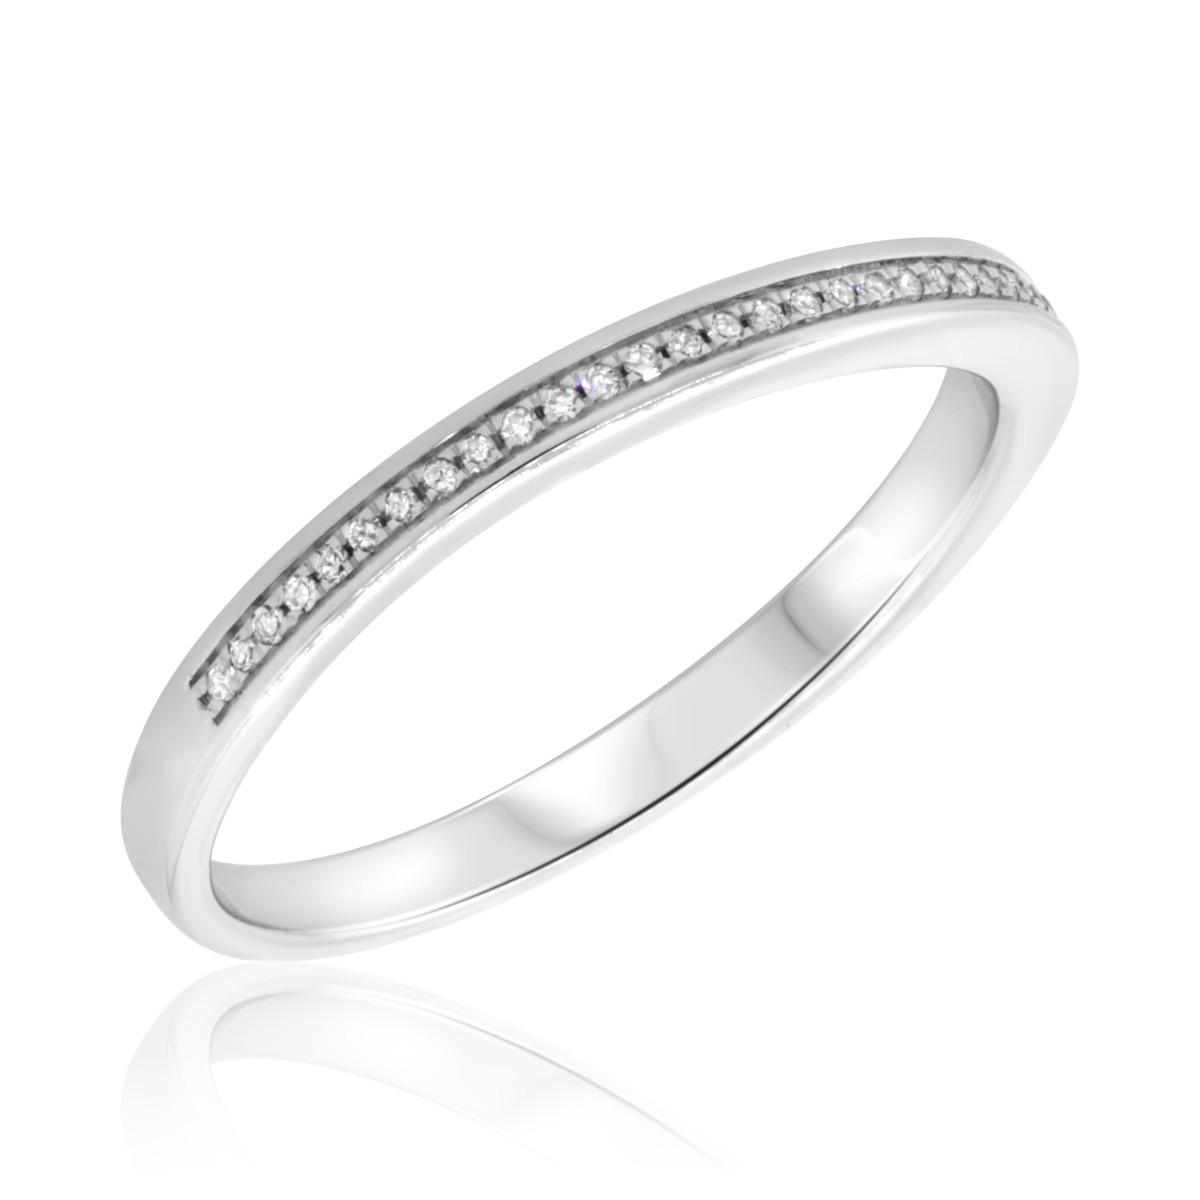 1/8 CT. T.W. Diamond Ladies Wedding Band  10K White Gold